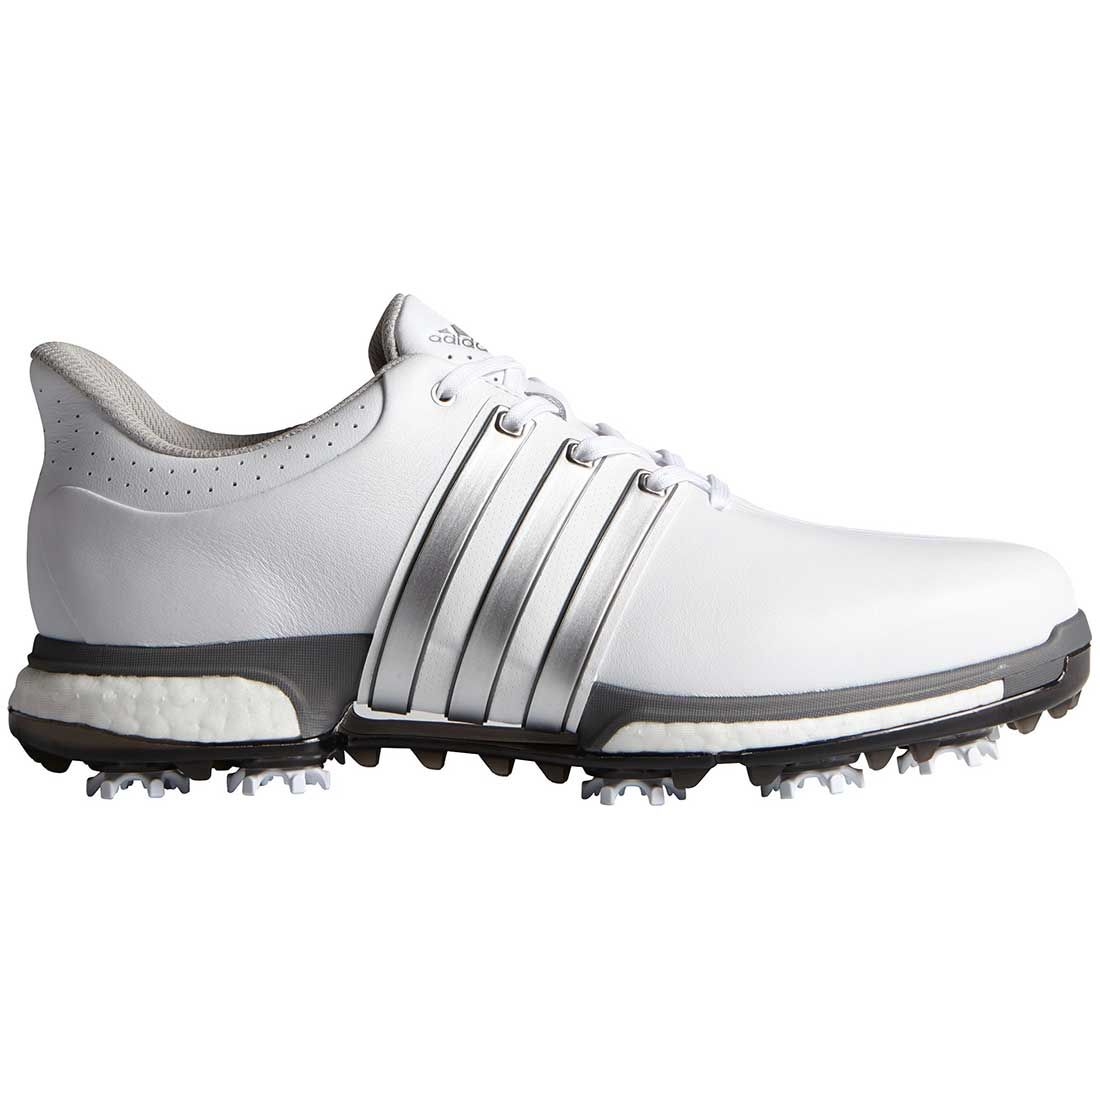 Buy Adidas Tour360 Boost Golf Shoes White/Silver   Golf Discount